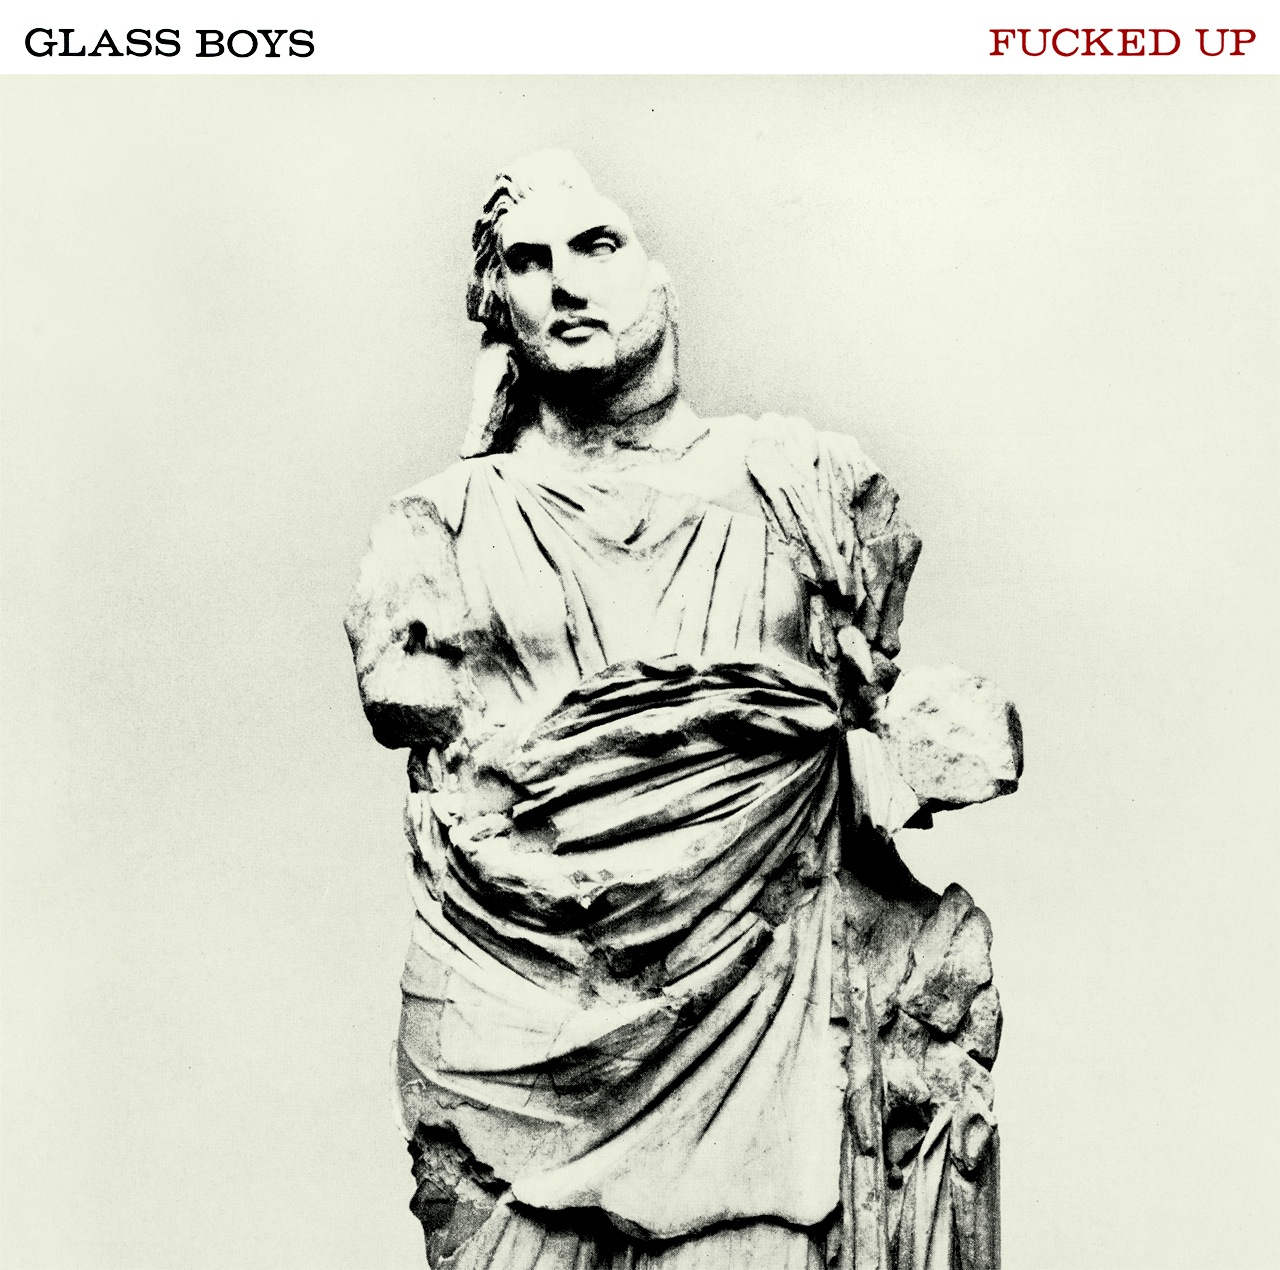 Fucked Up - Glass Boys Slow Version dbl lp (Matador)